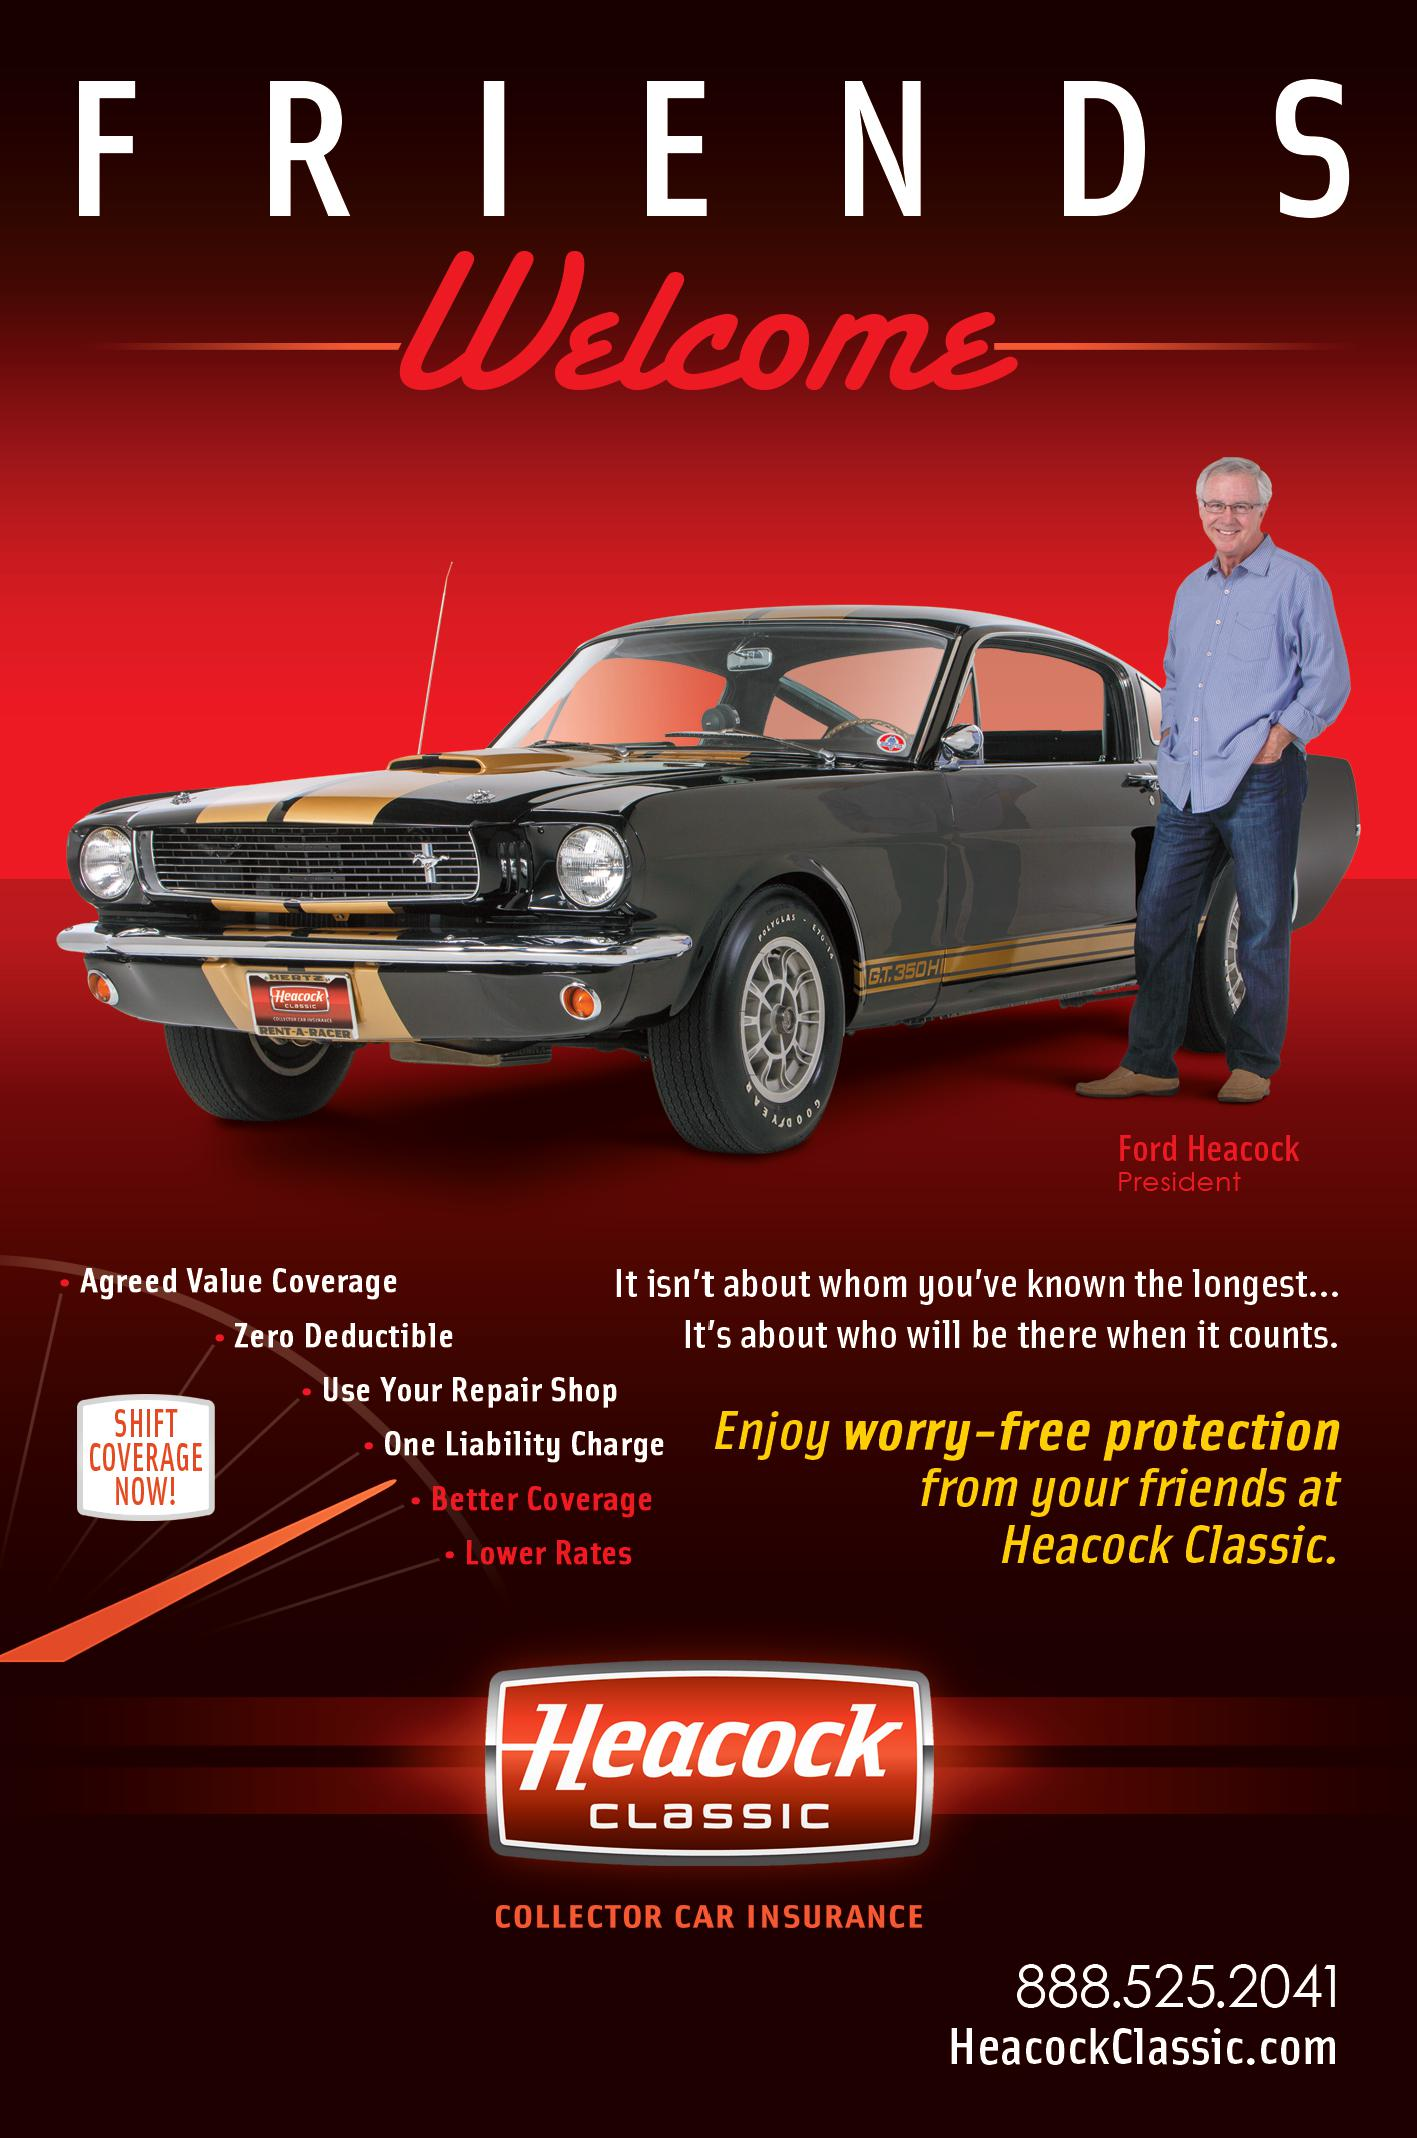 Heacock Classic Collector Car Insurance